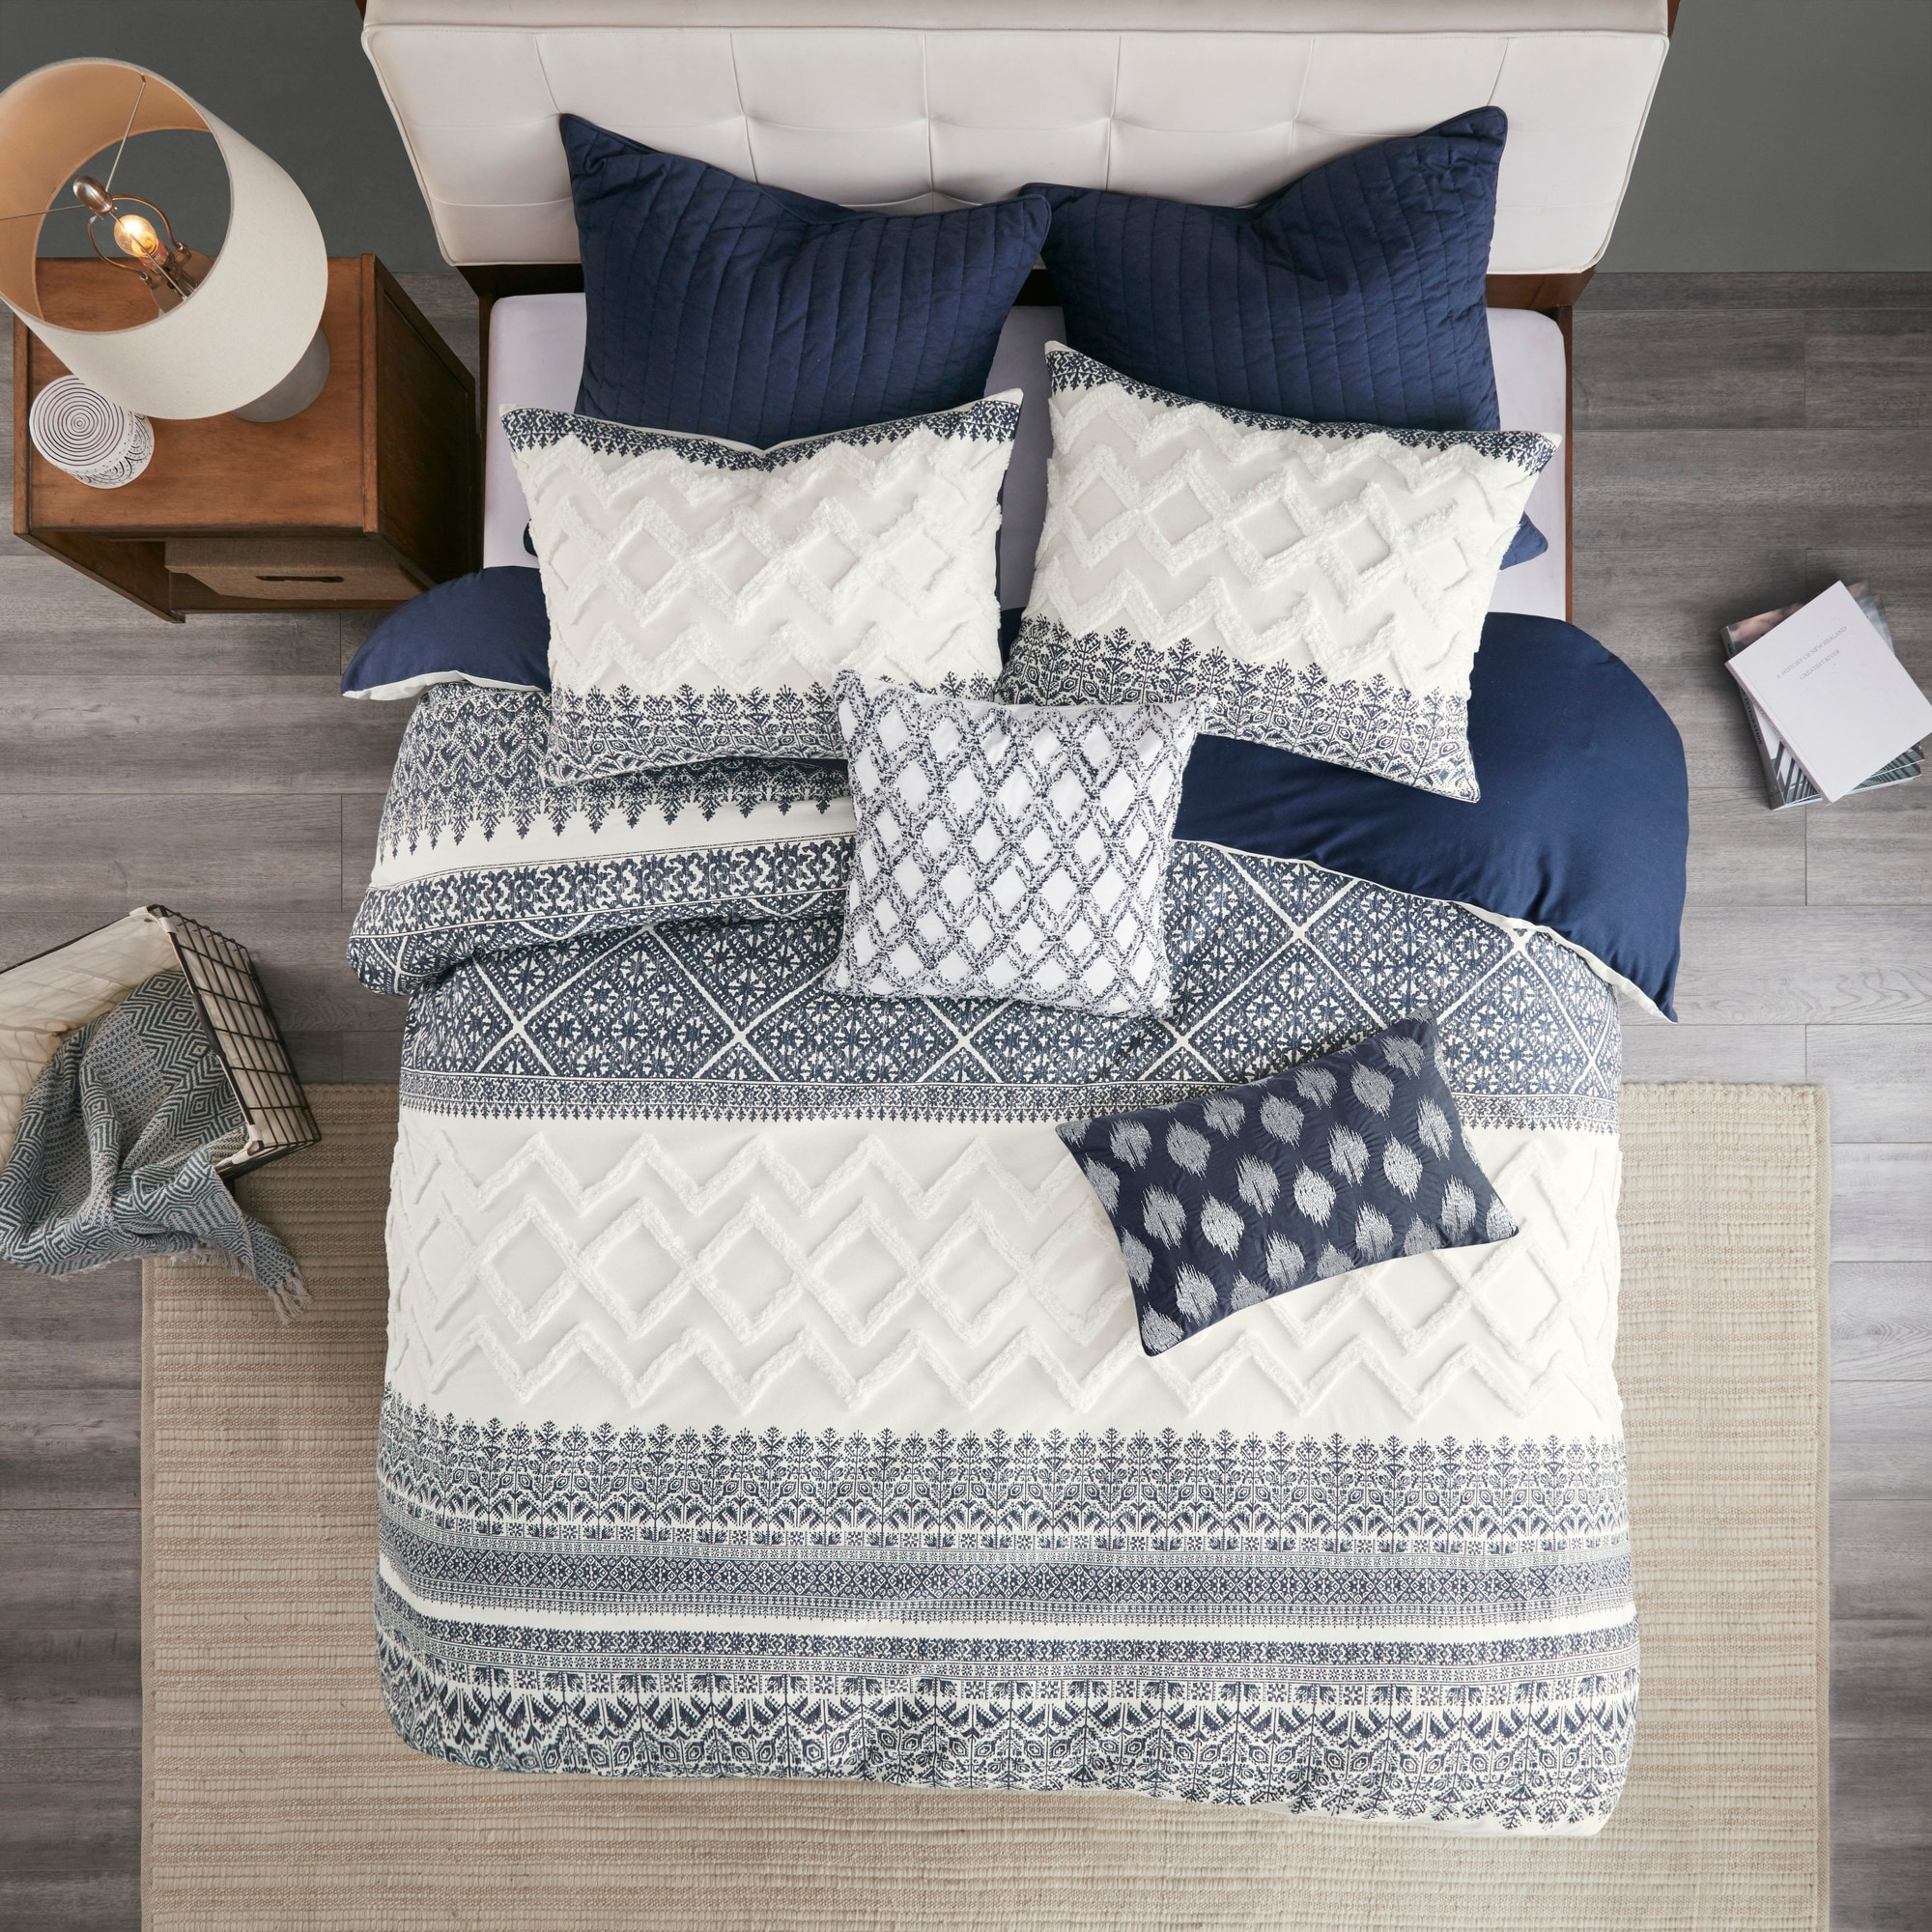 The Curated Nomad Natoma Cotton Chenille Printed Duvet Cover Set On Sale Overstock 29447791